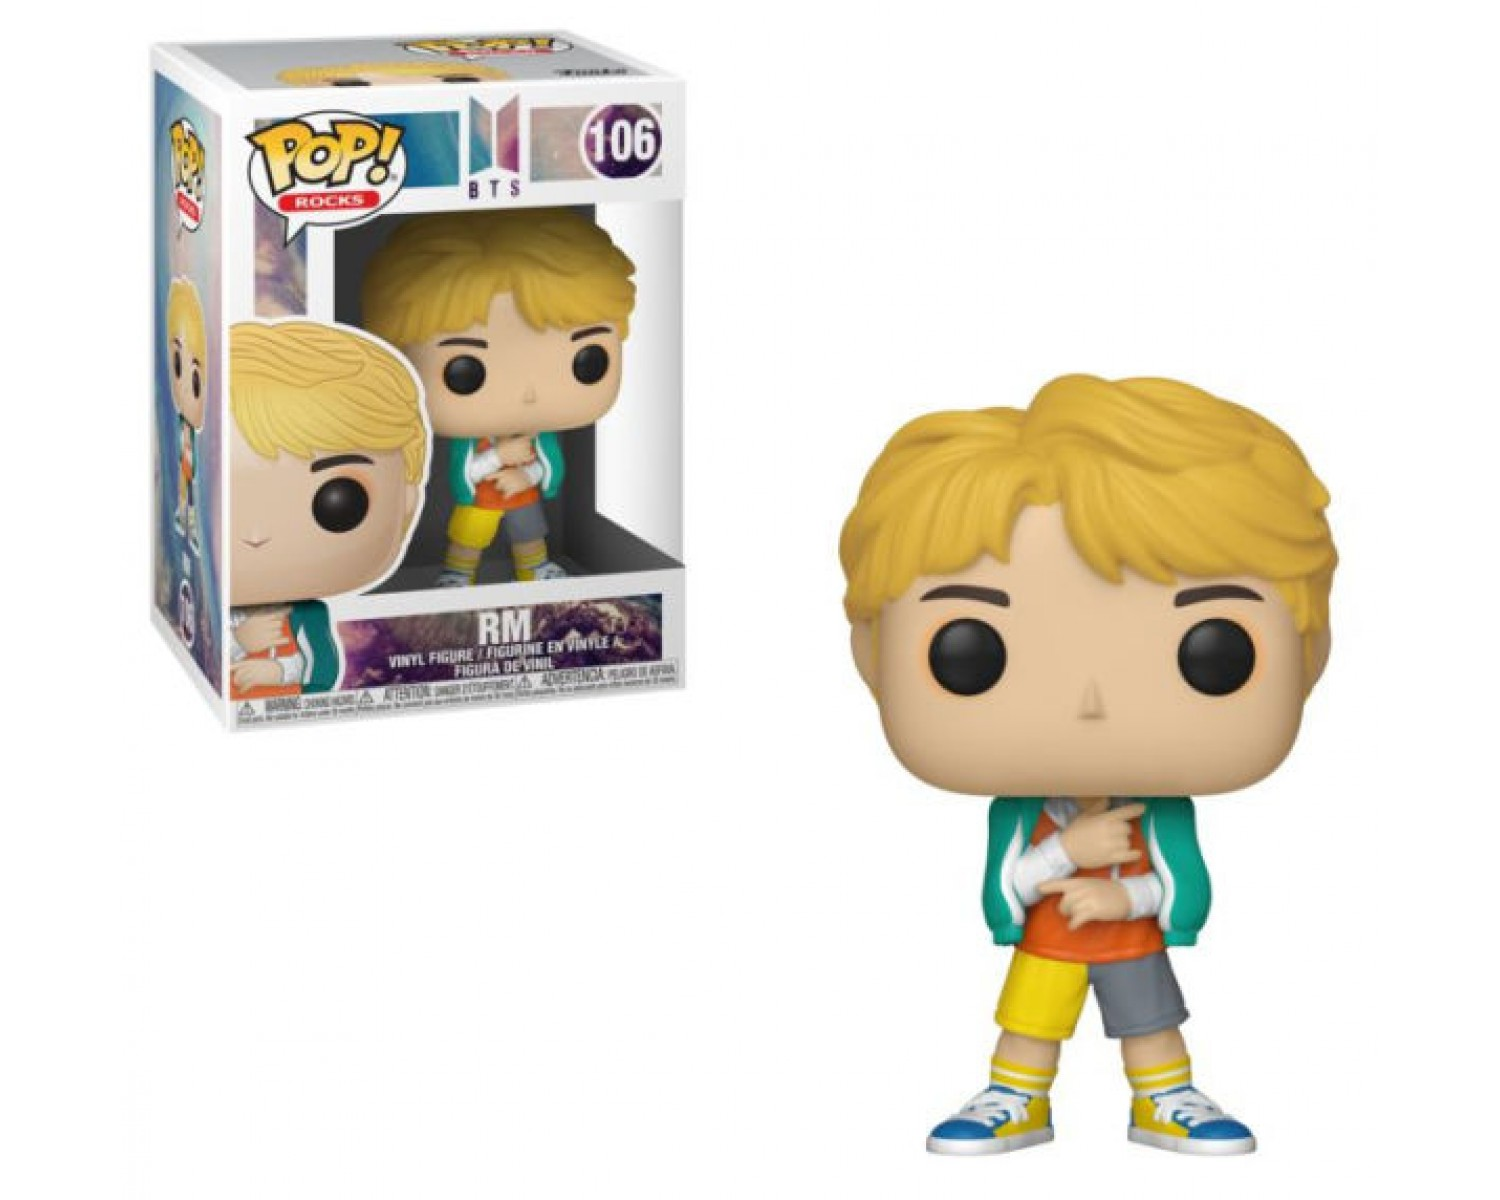 Funko Pop Rocks 102 BTS 37865 J-Hope